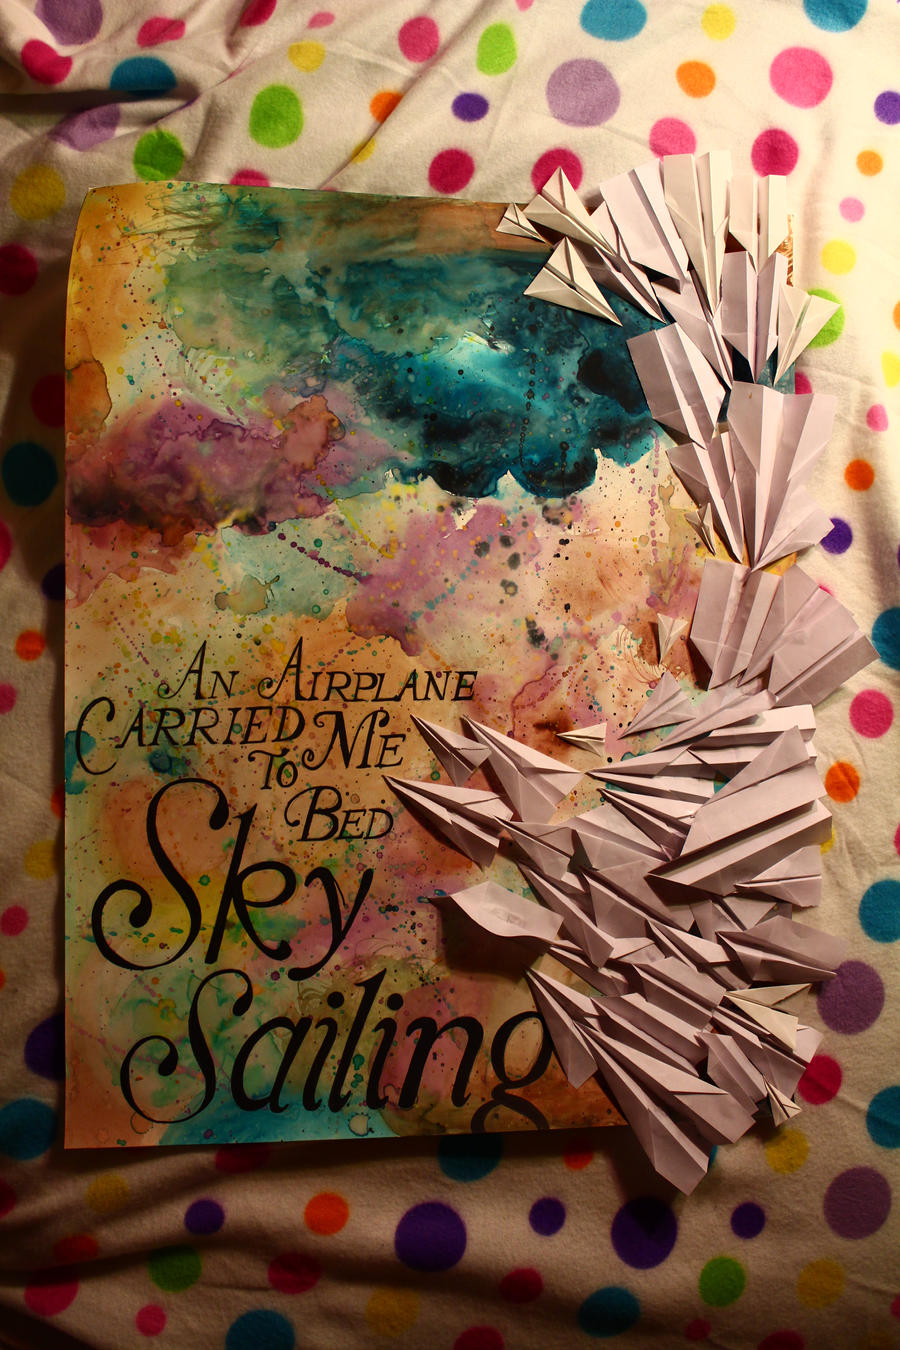 Sky Sailing Poster by ForkNayon